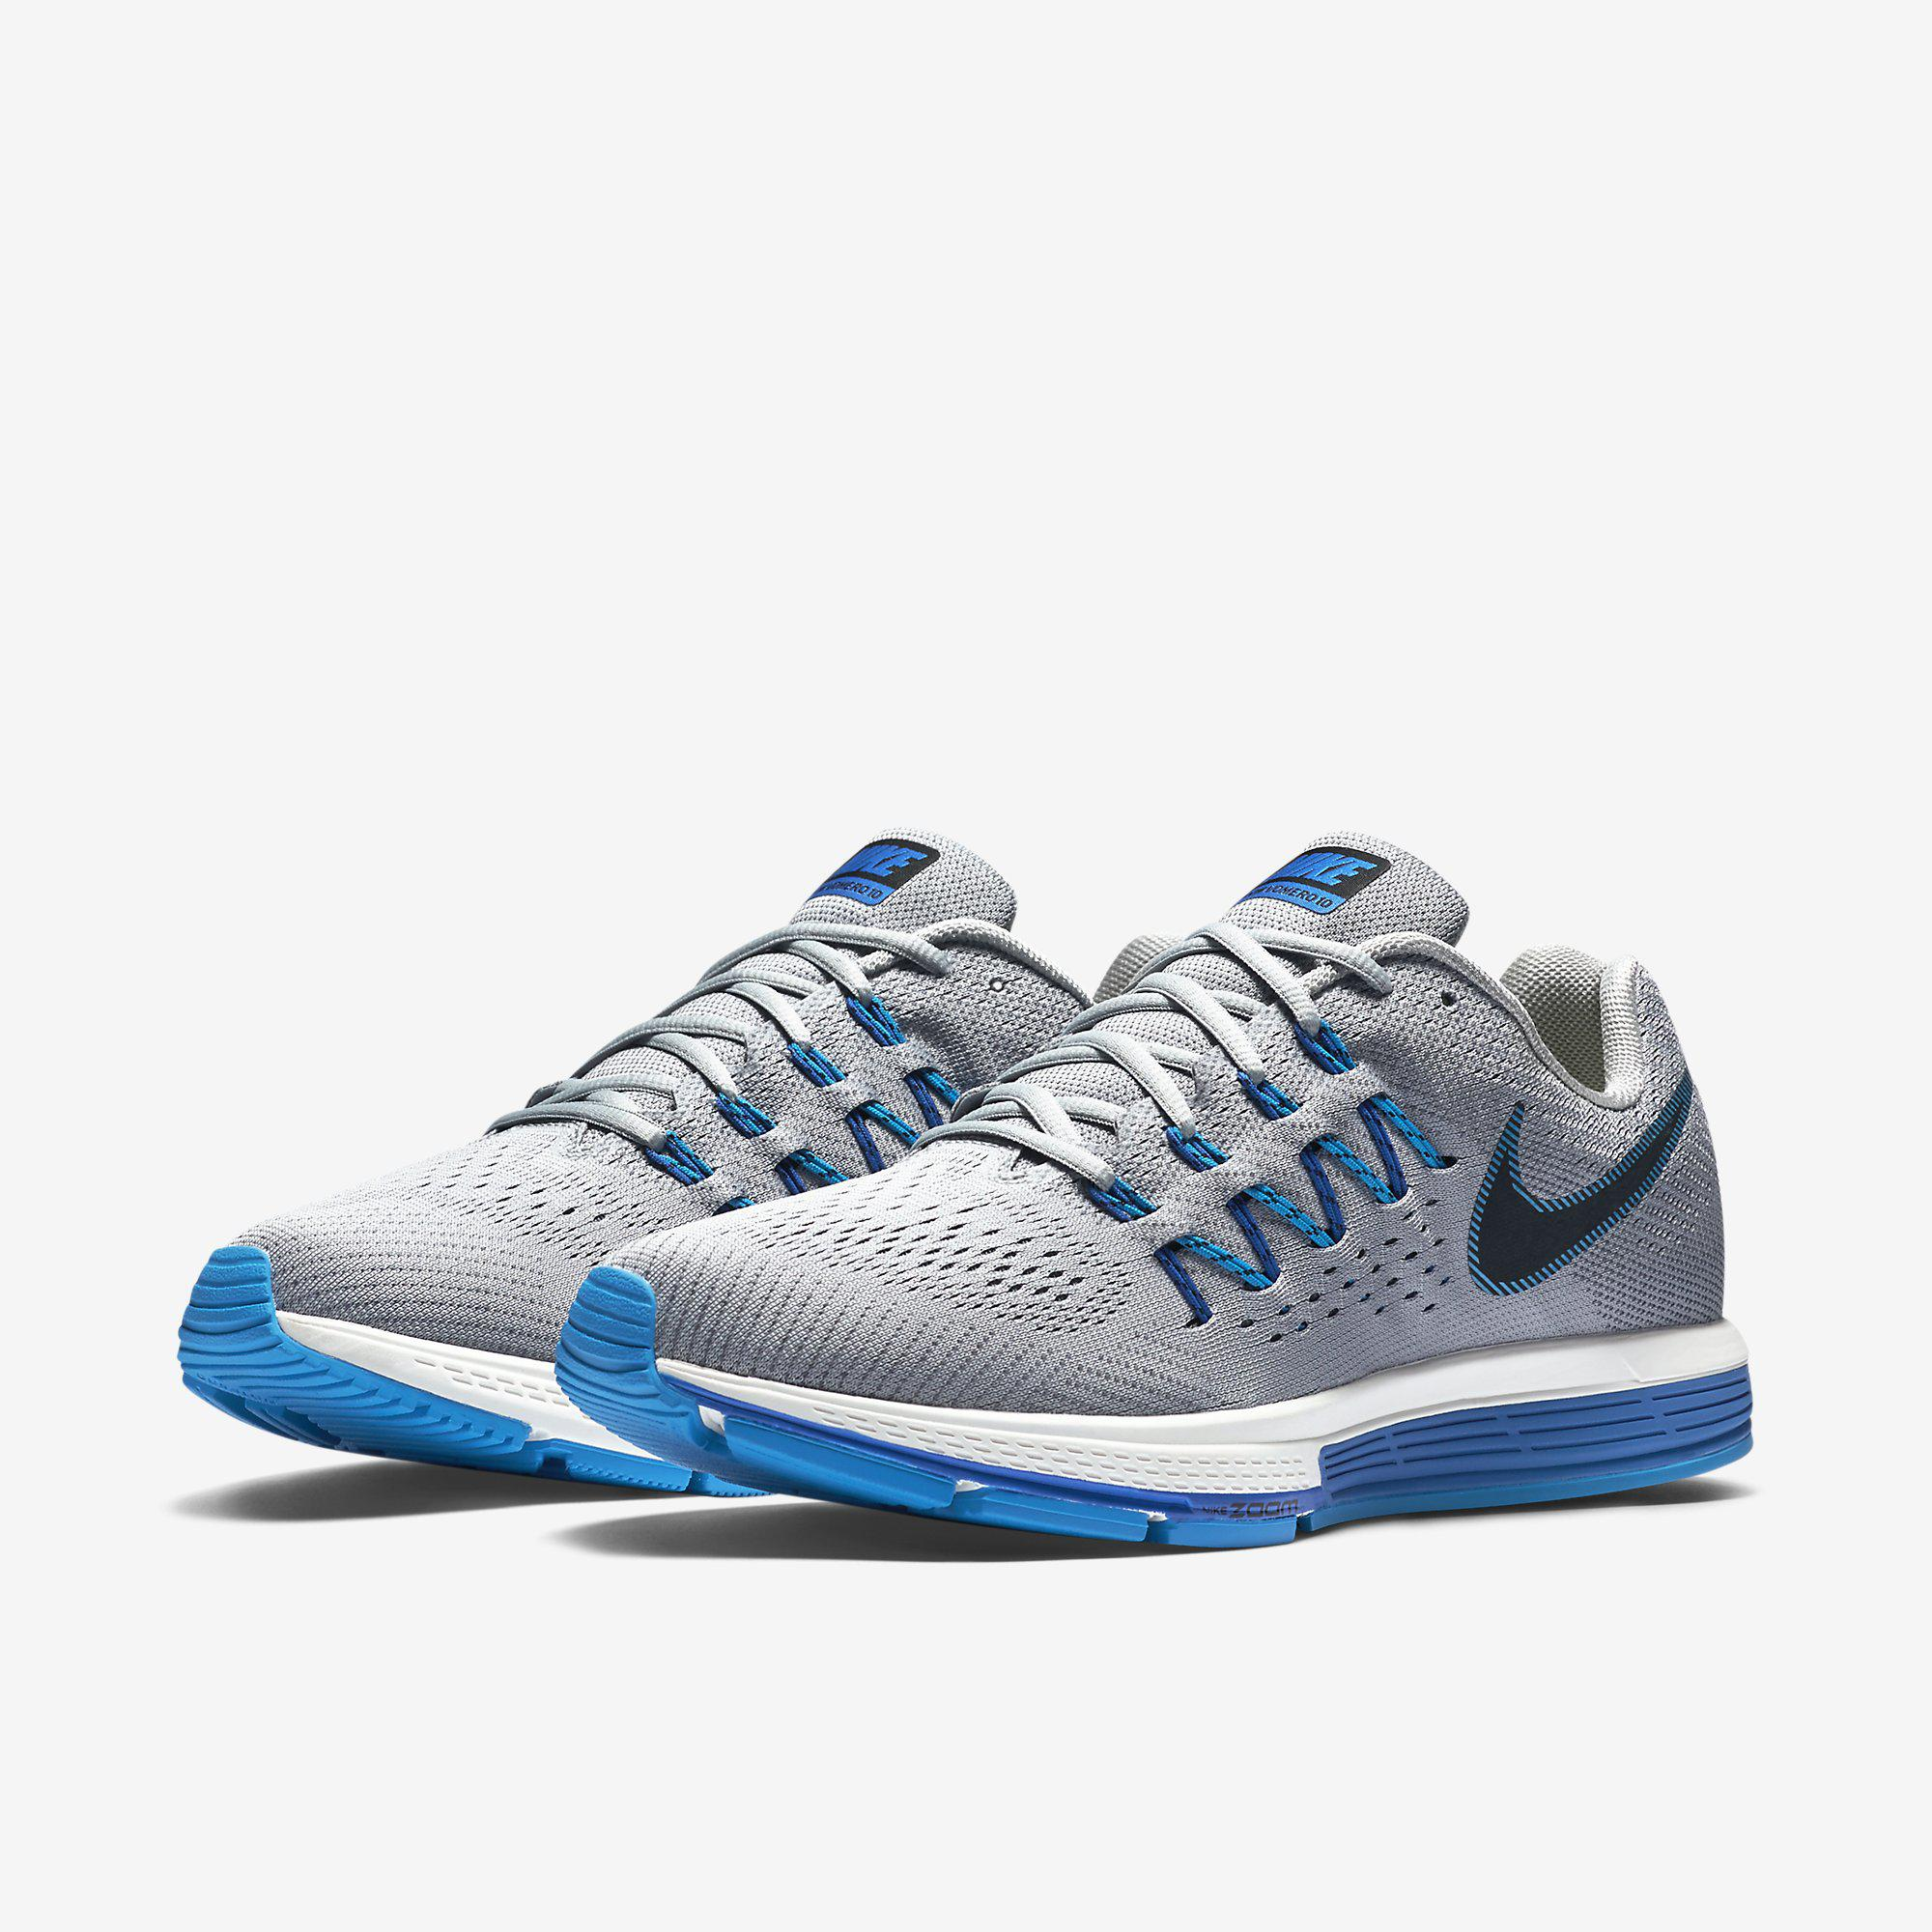 quality design 12509 f4383 Nike Mens Air Zoom Vomero 10 Running Shoes - Wolf Grey Photo Blue